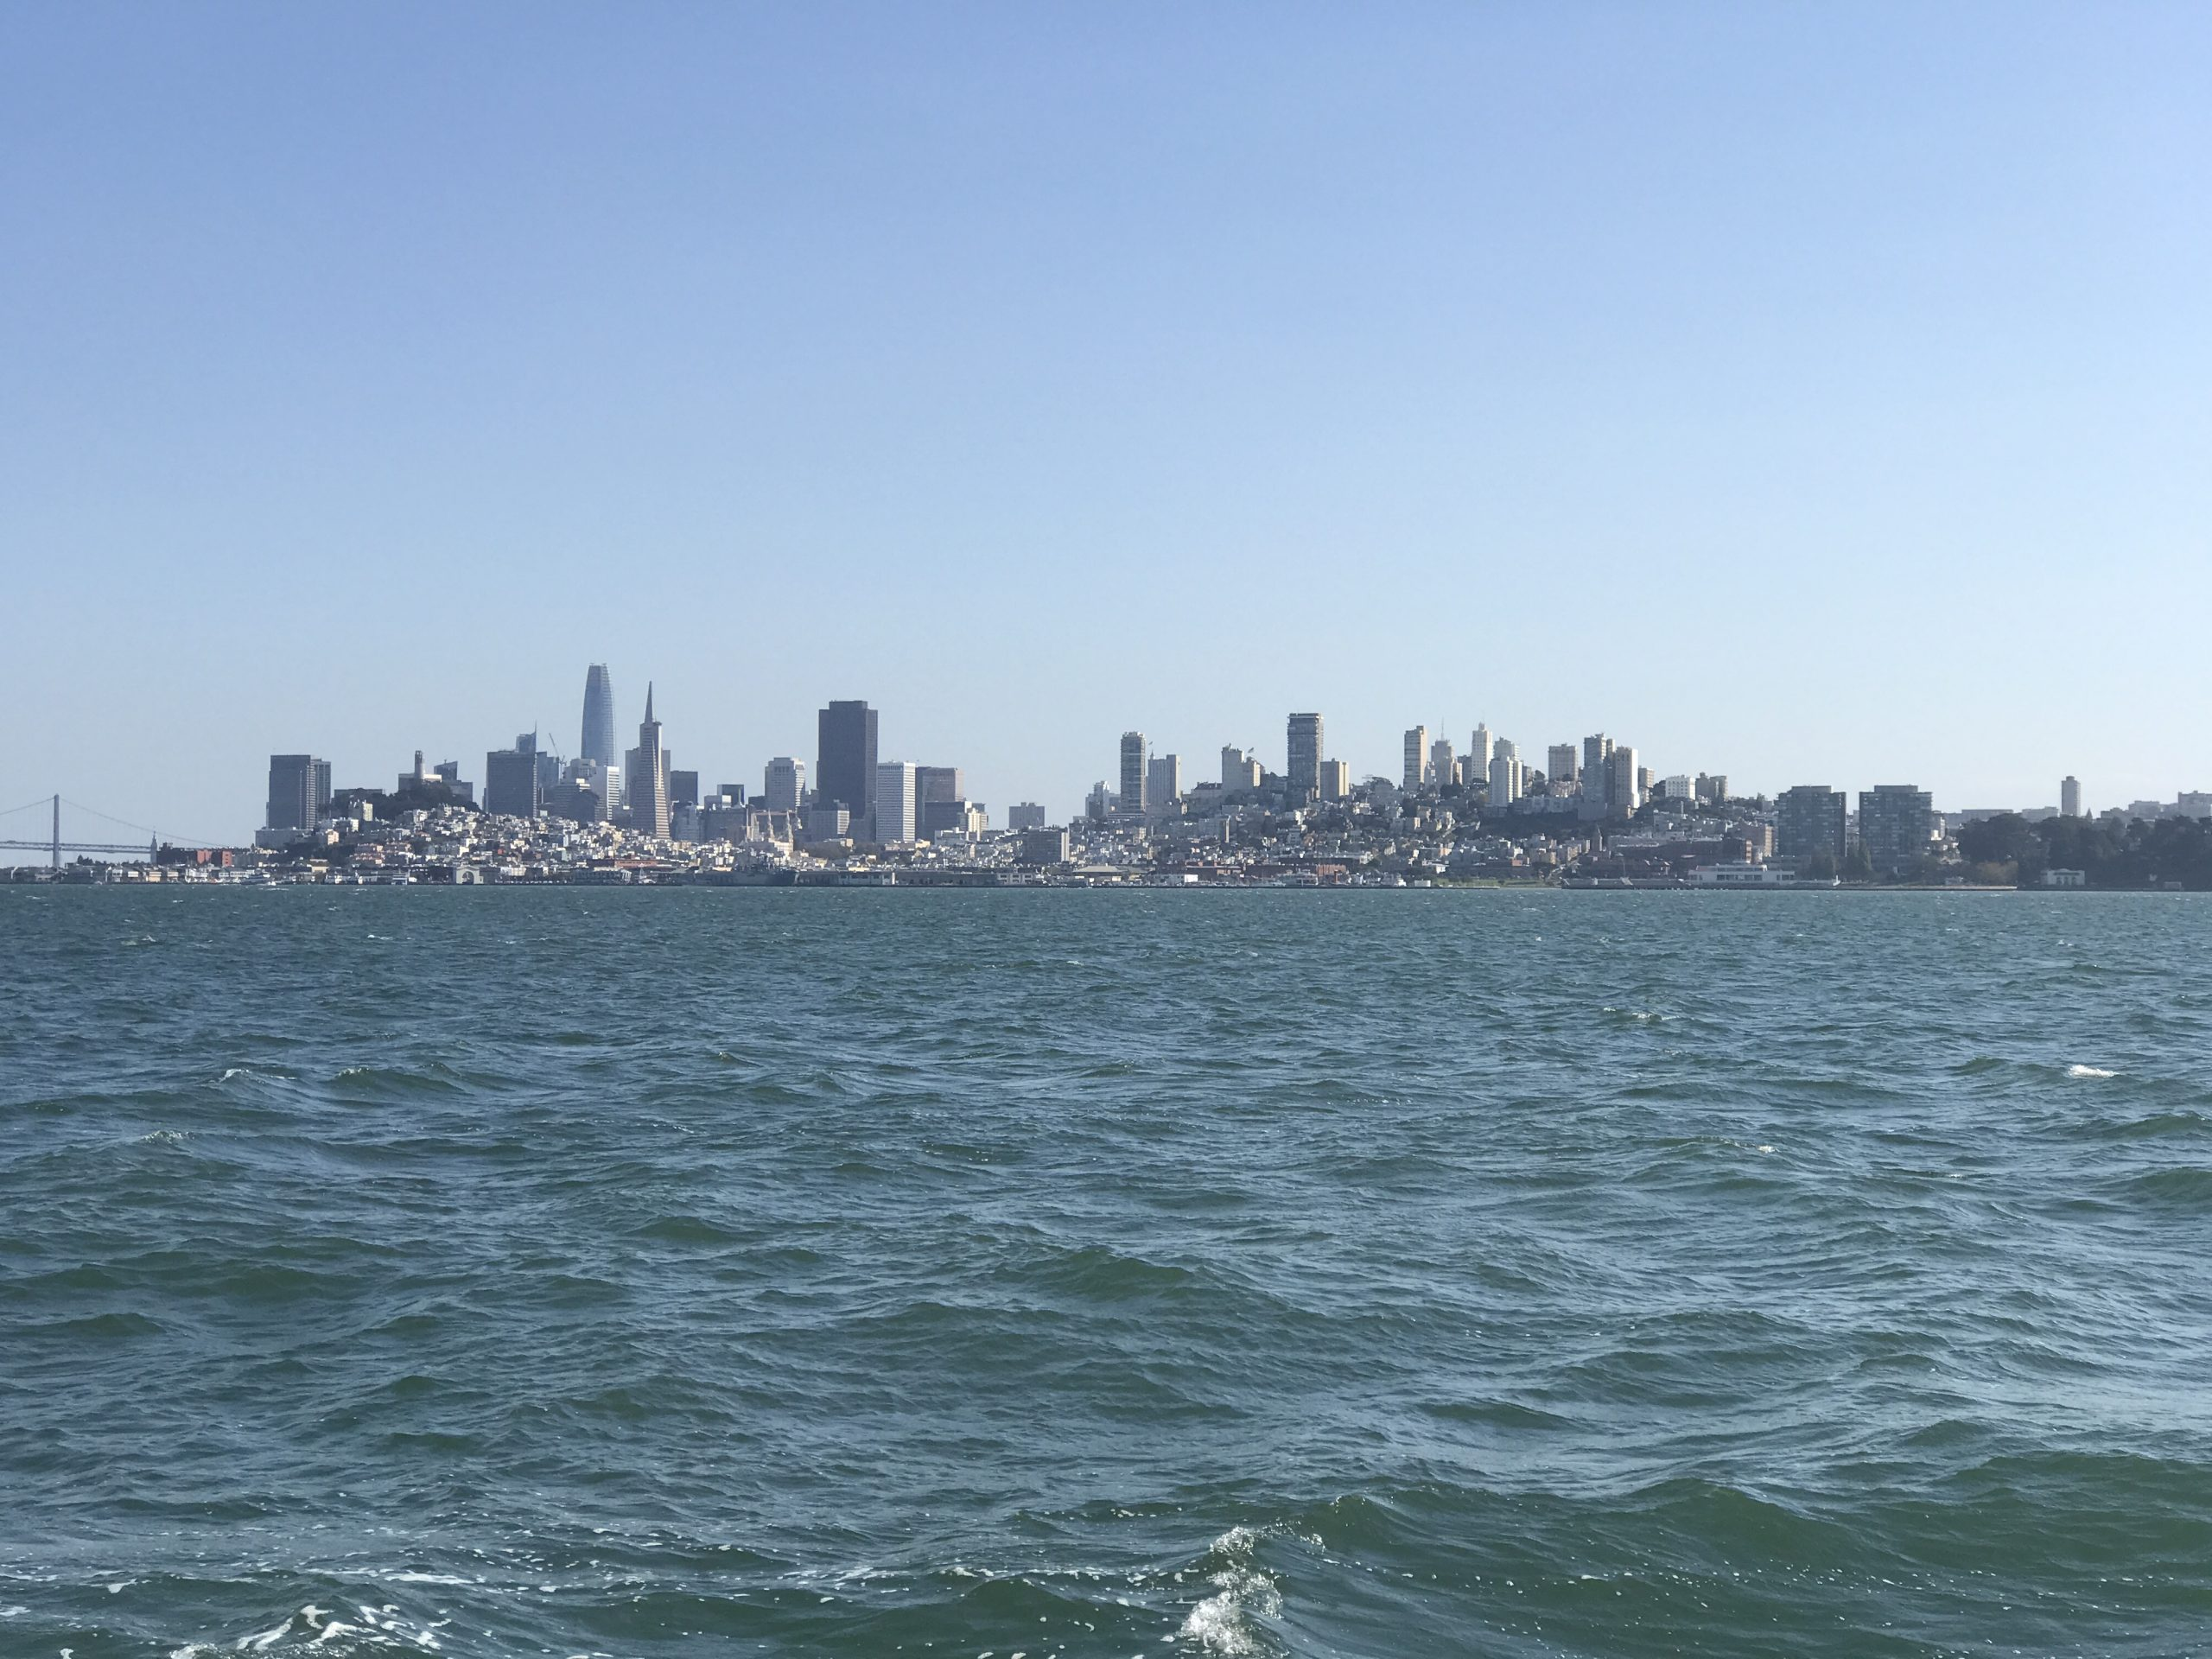 a picture of San Francisco Skyline taken by VANTIQ from the Empress cruise